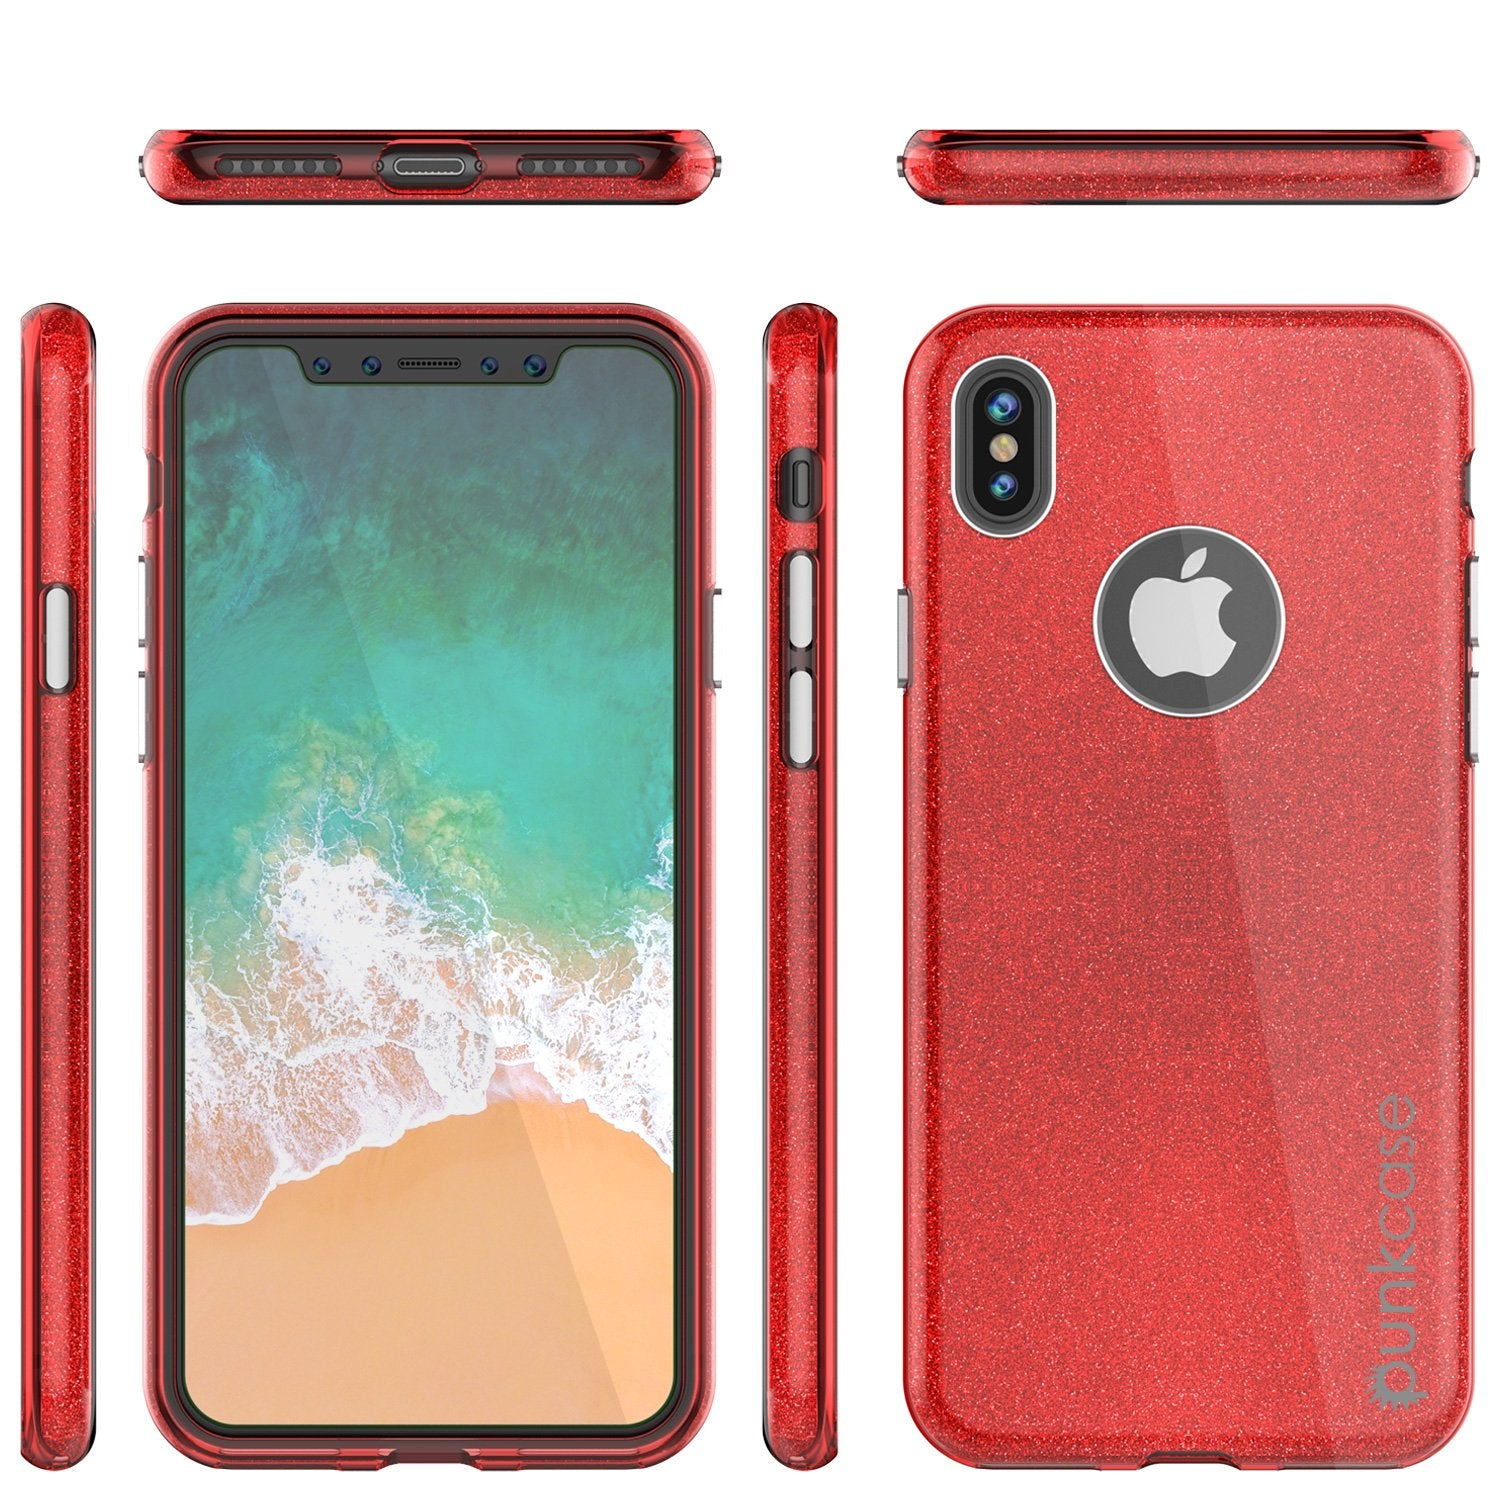 iPhone X Case, Punkcase Galactic 2.0 Series Ultra Slim w/ Tempered Glass Screen Protector | [Red]